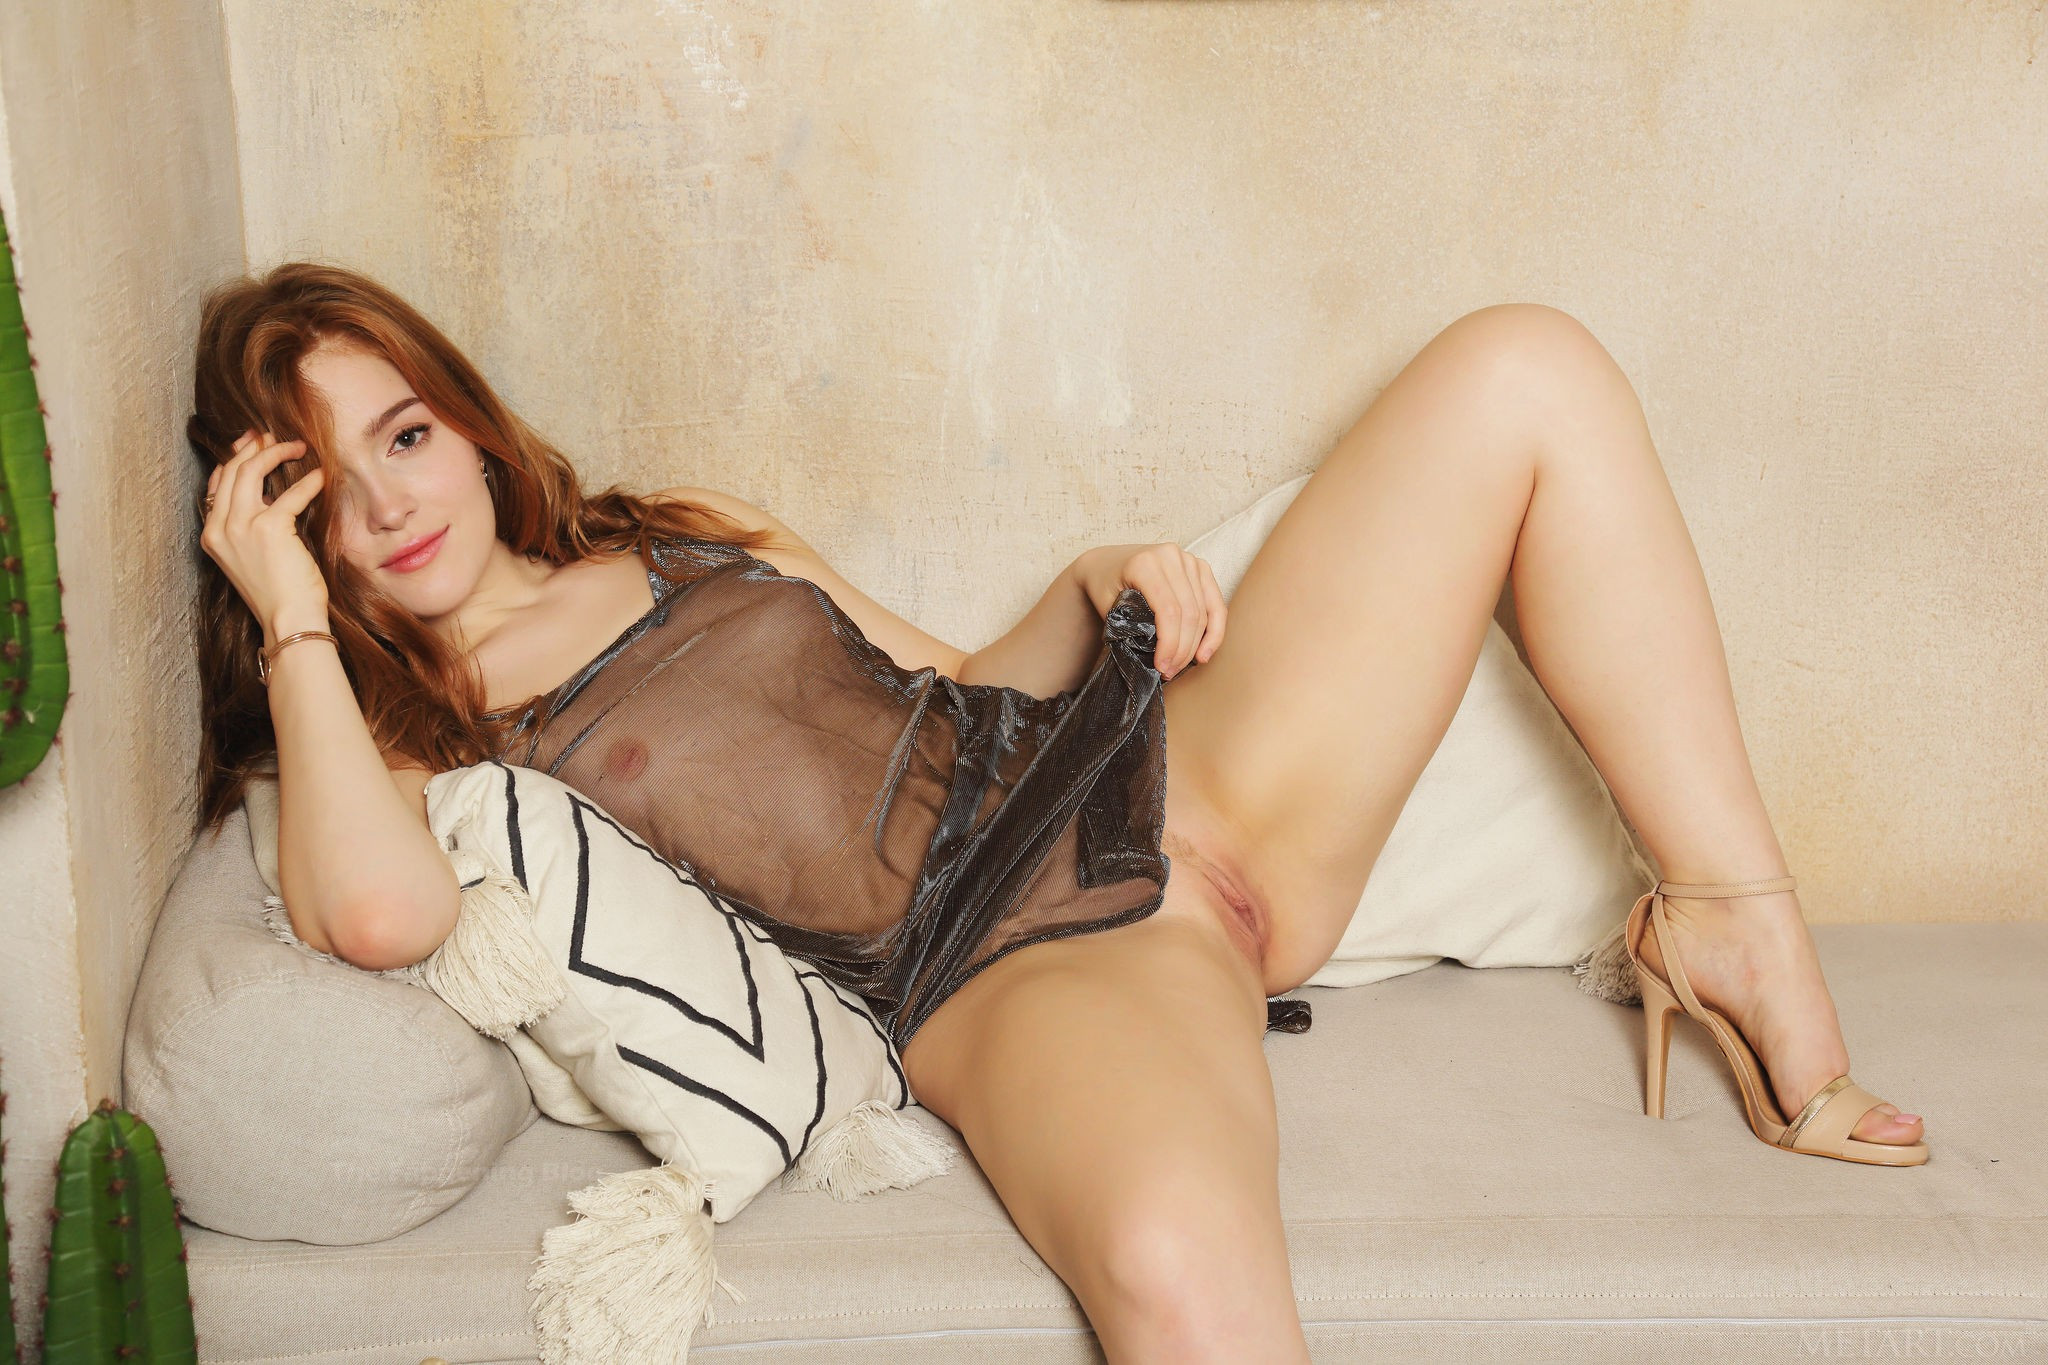 11 Jia Lissa Nude Sheer Perfection fappenings.com